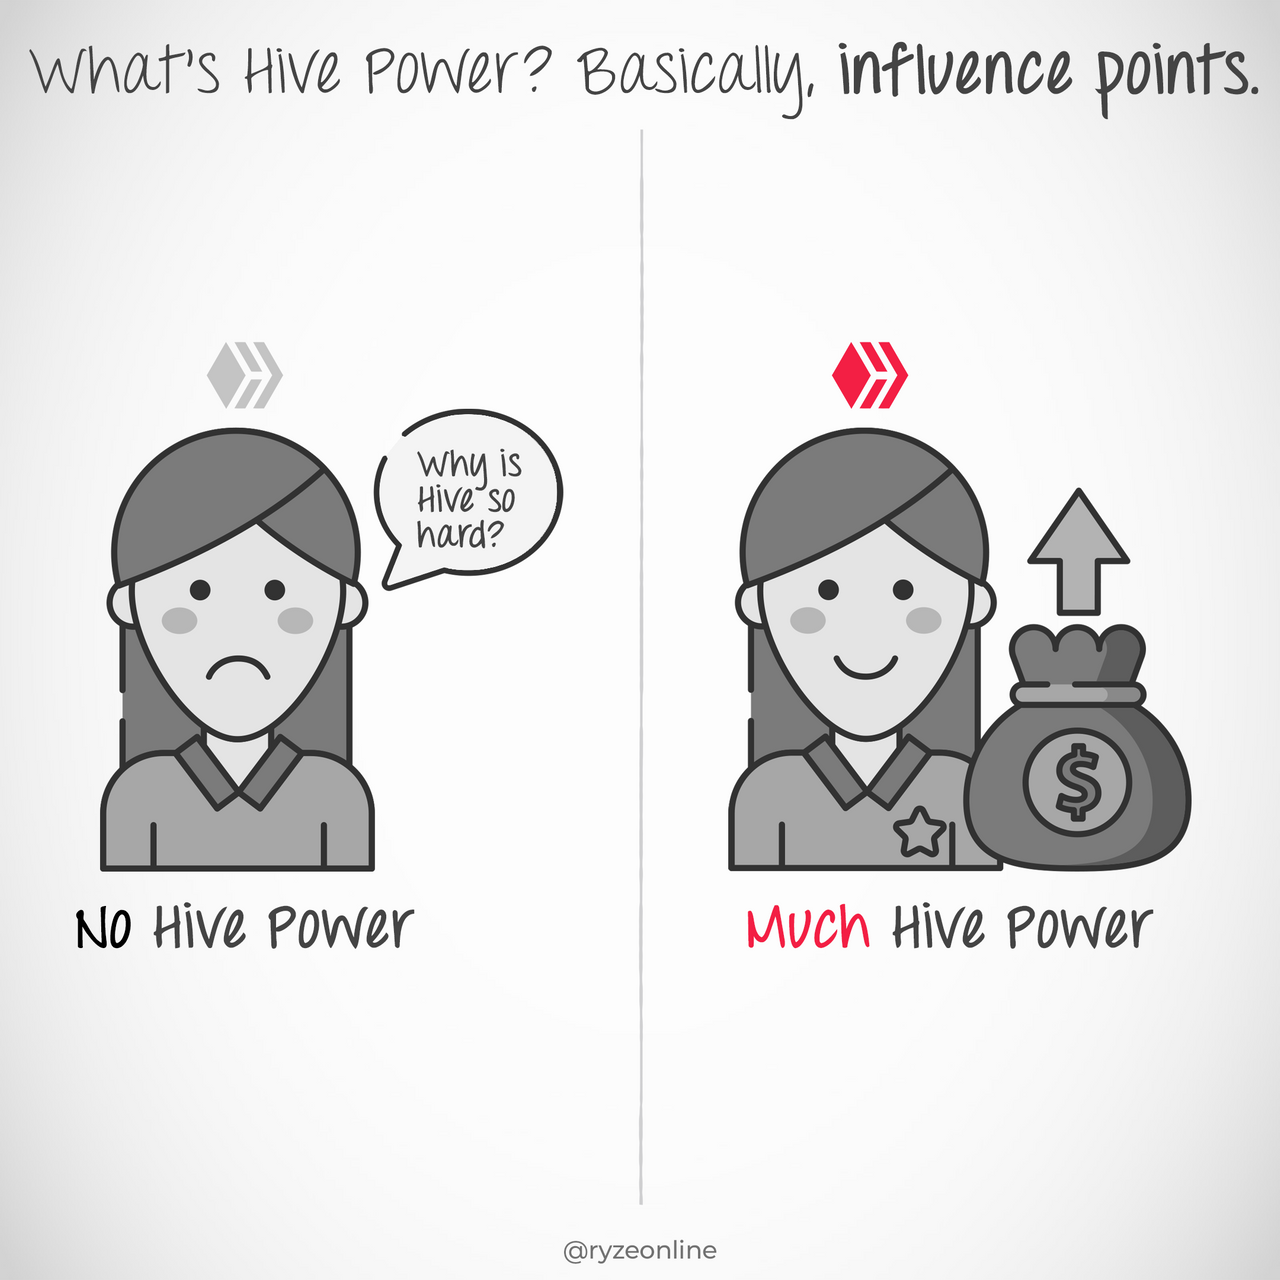 HiveBasic_080_HivePower_Influence.png